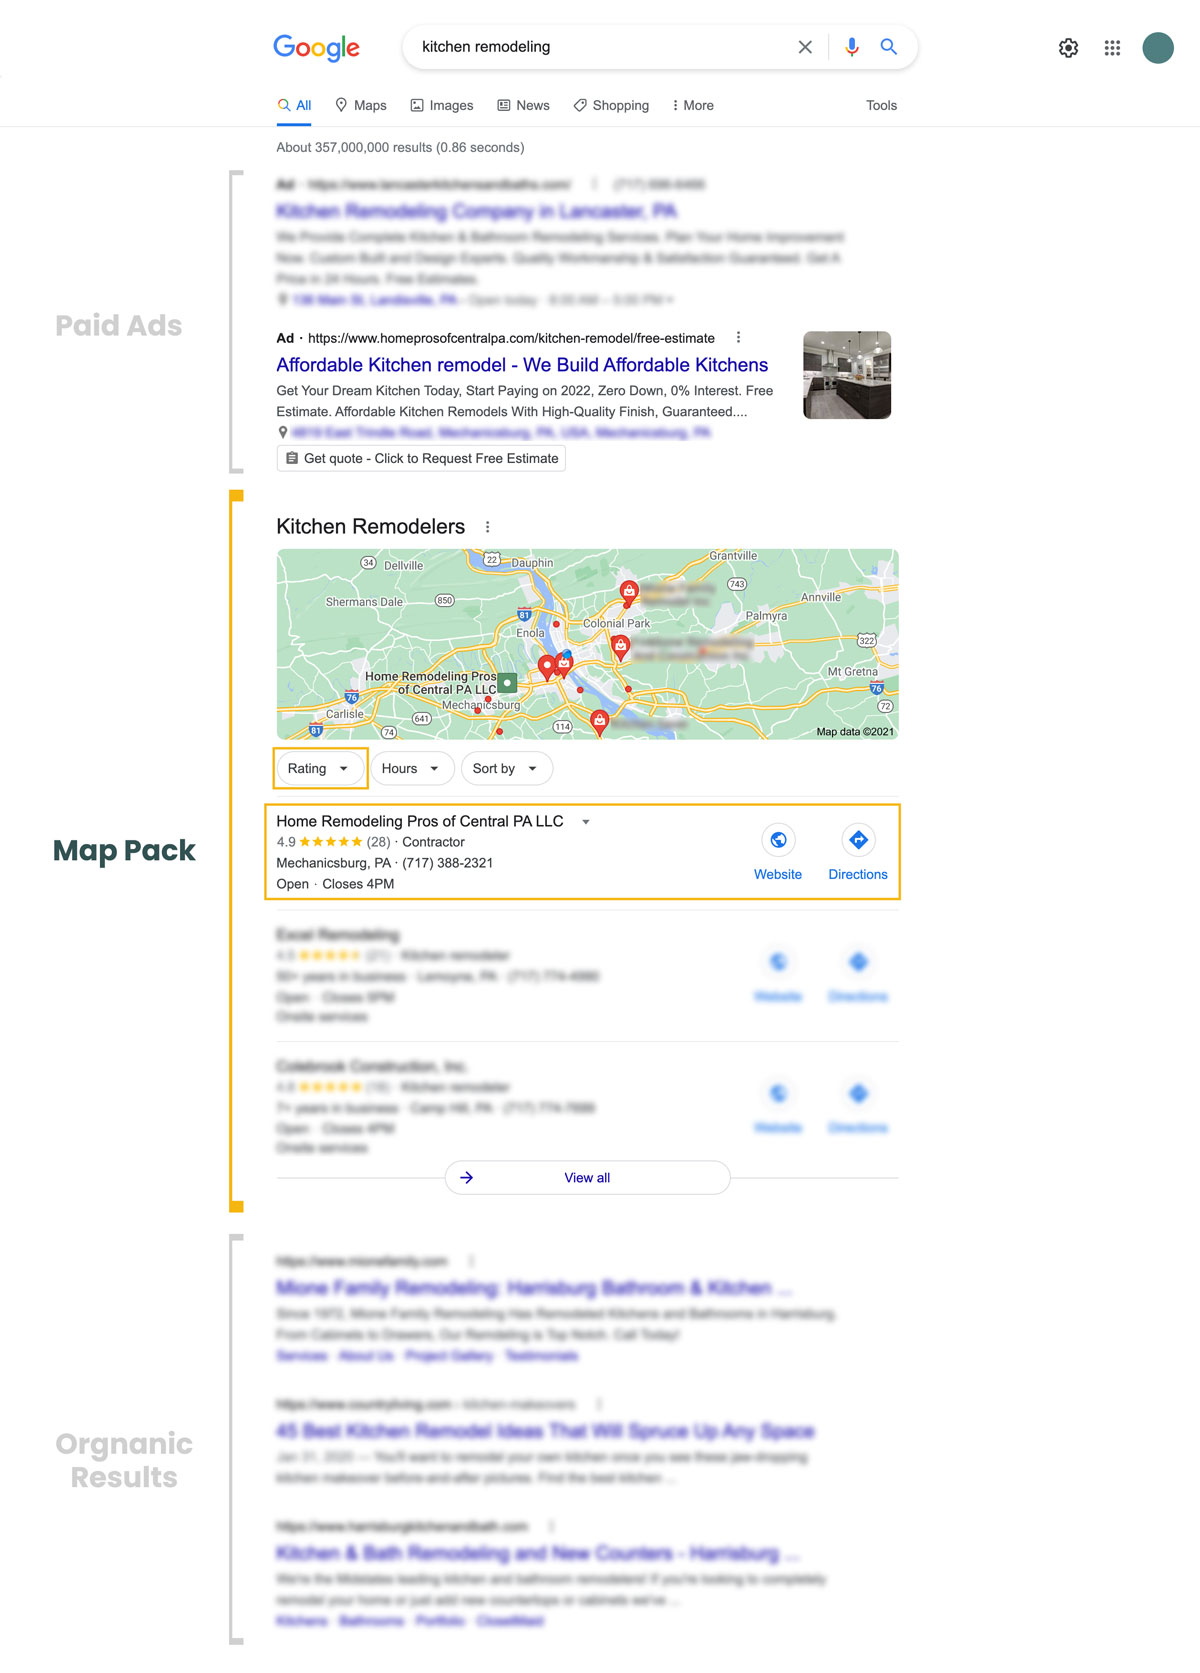 Location of the local 3 map pack in the google search results